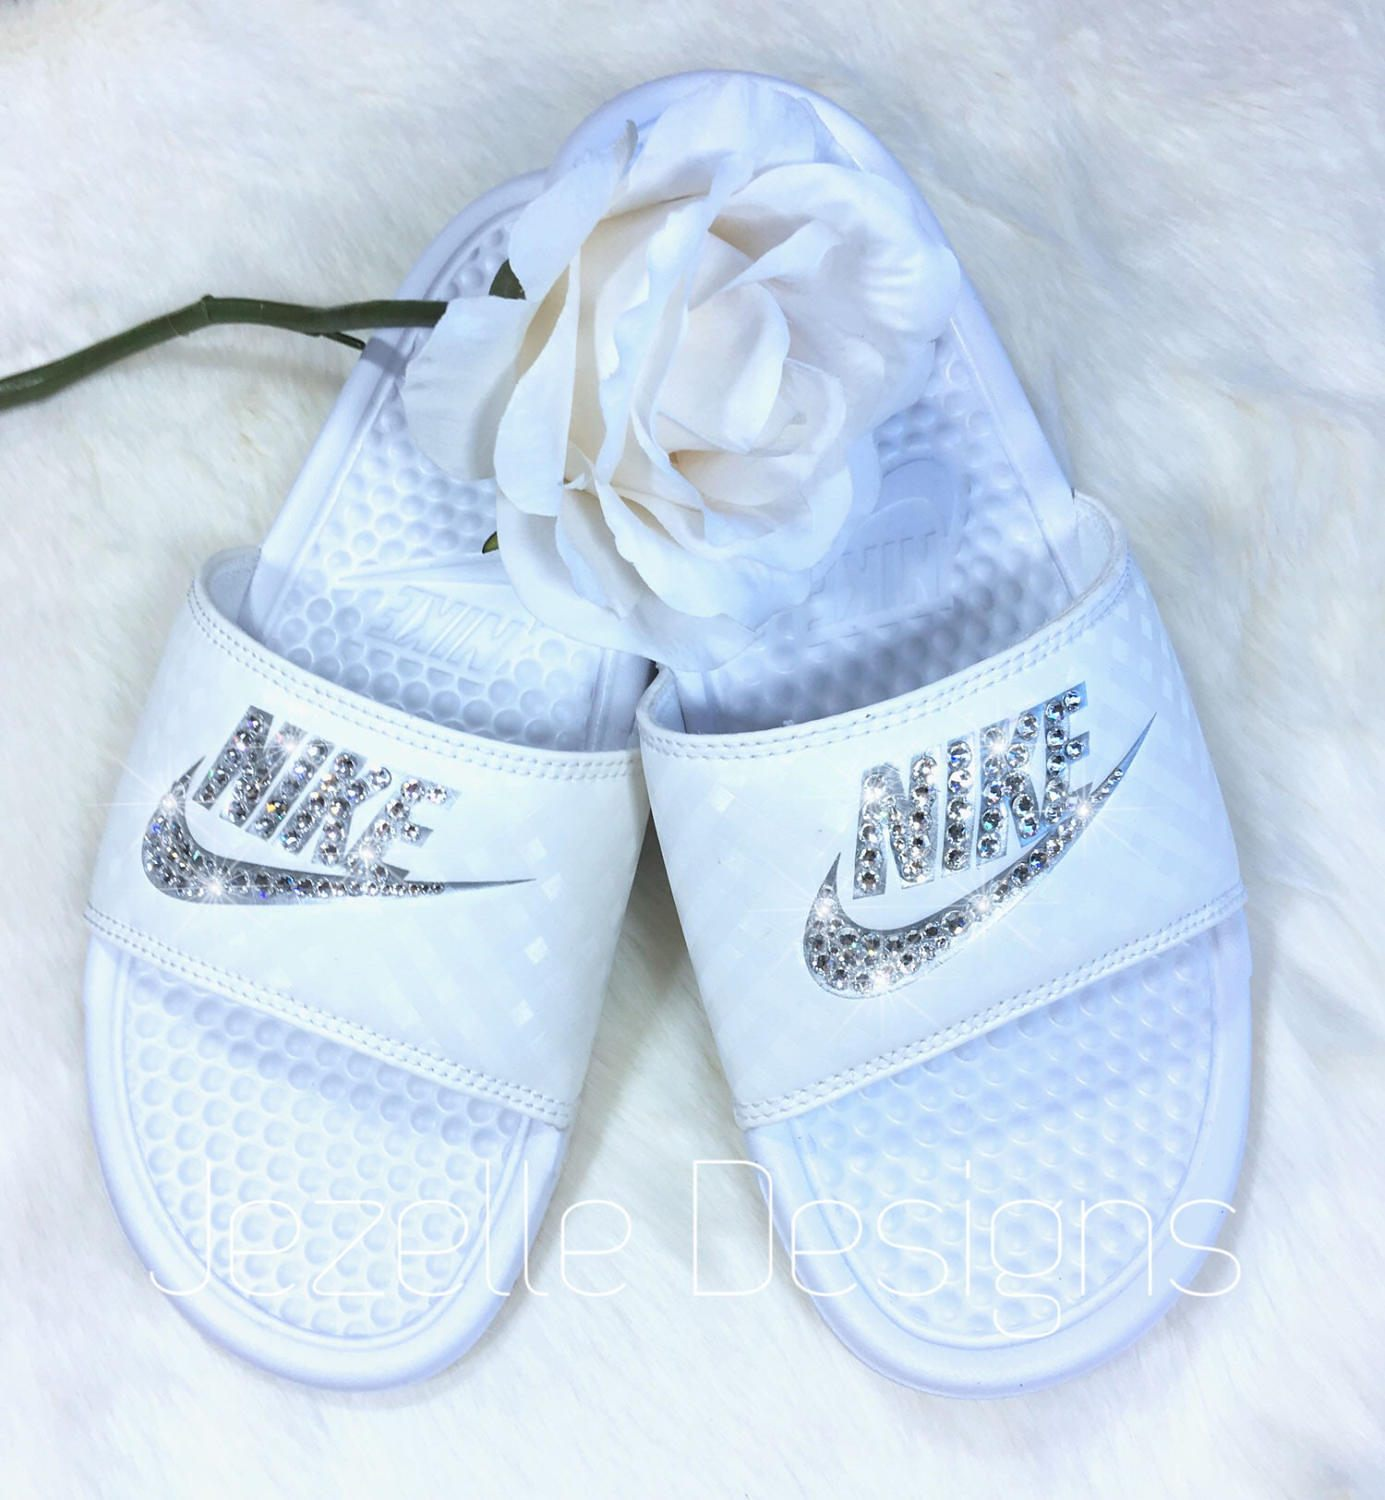 Swarovski Nike Slide Sandals Custom Hand Jeweled with Genuine ... ac2c72434